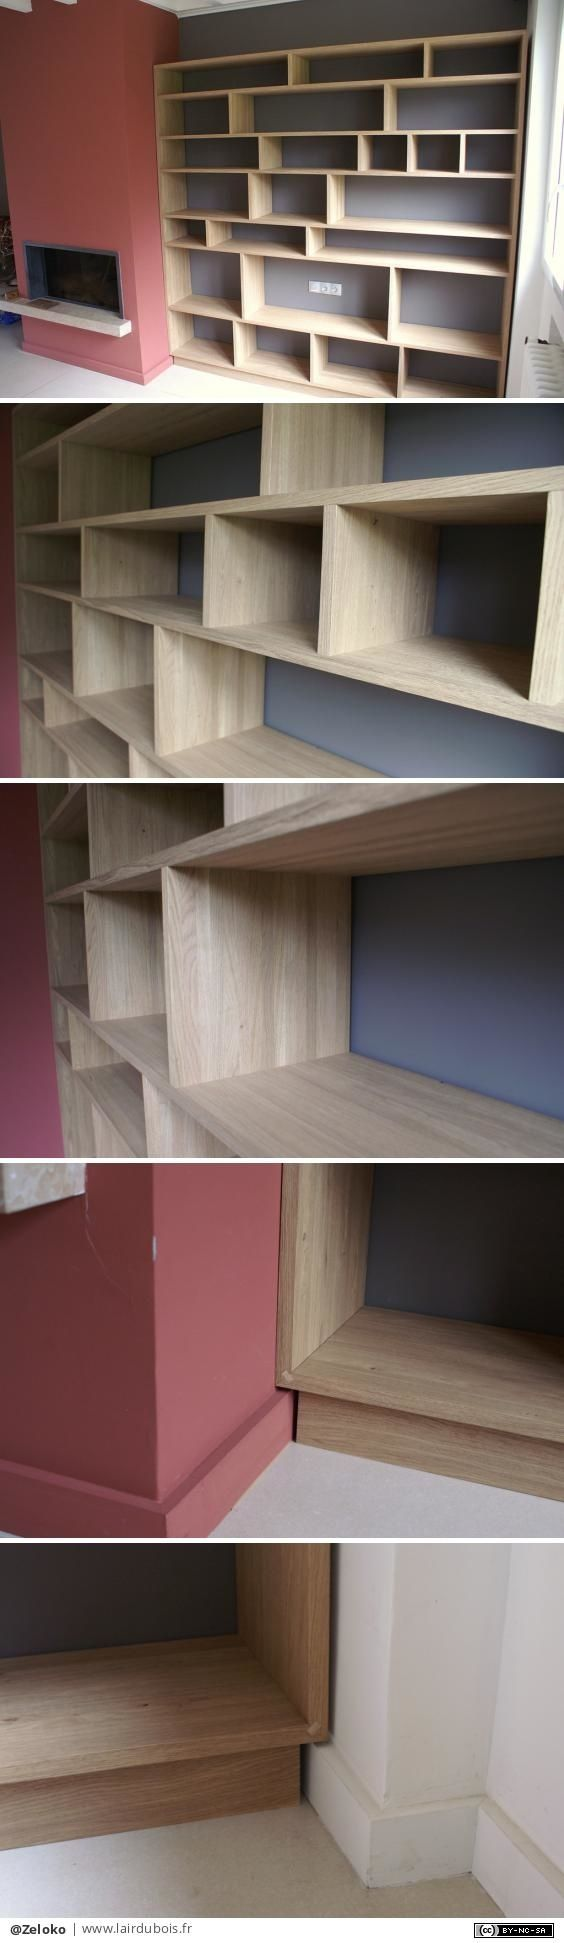 242 best mur etaga re images on pinterest bookcase wall living rooms and lounges